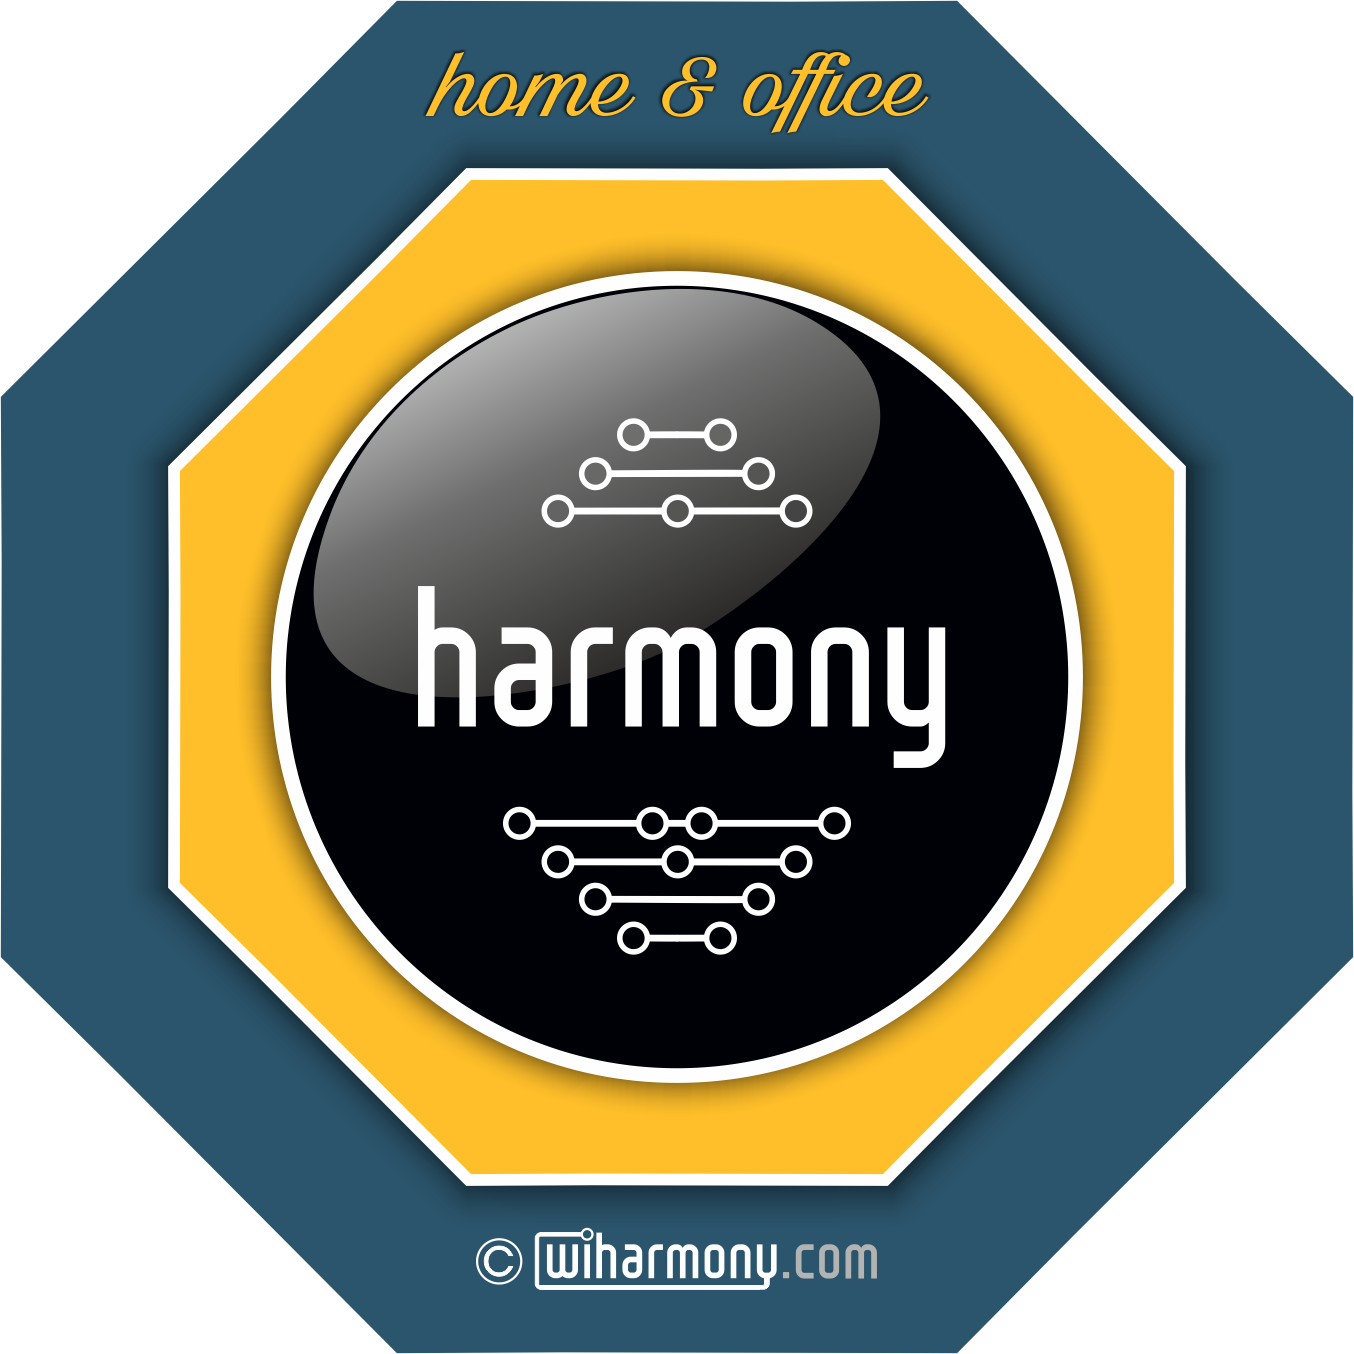 wiharmony Home & Office